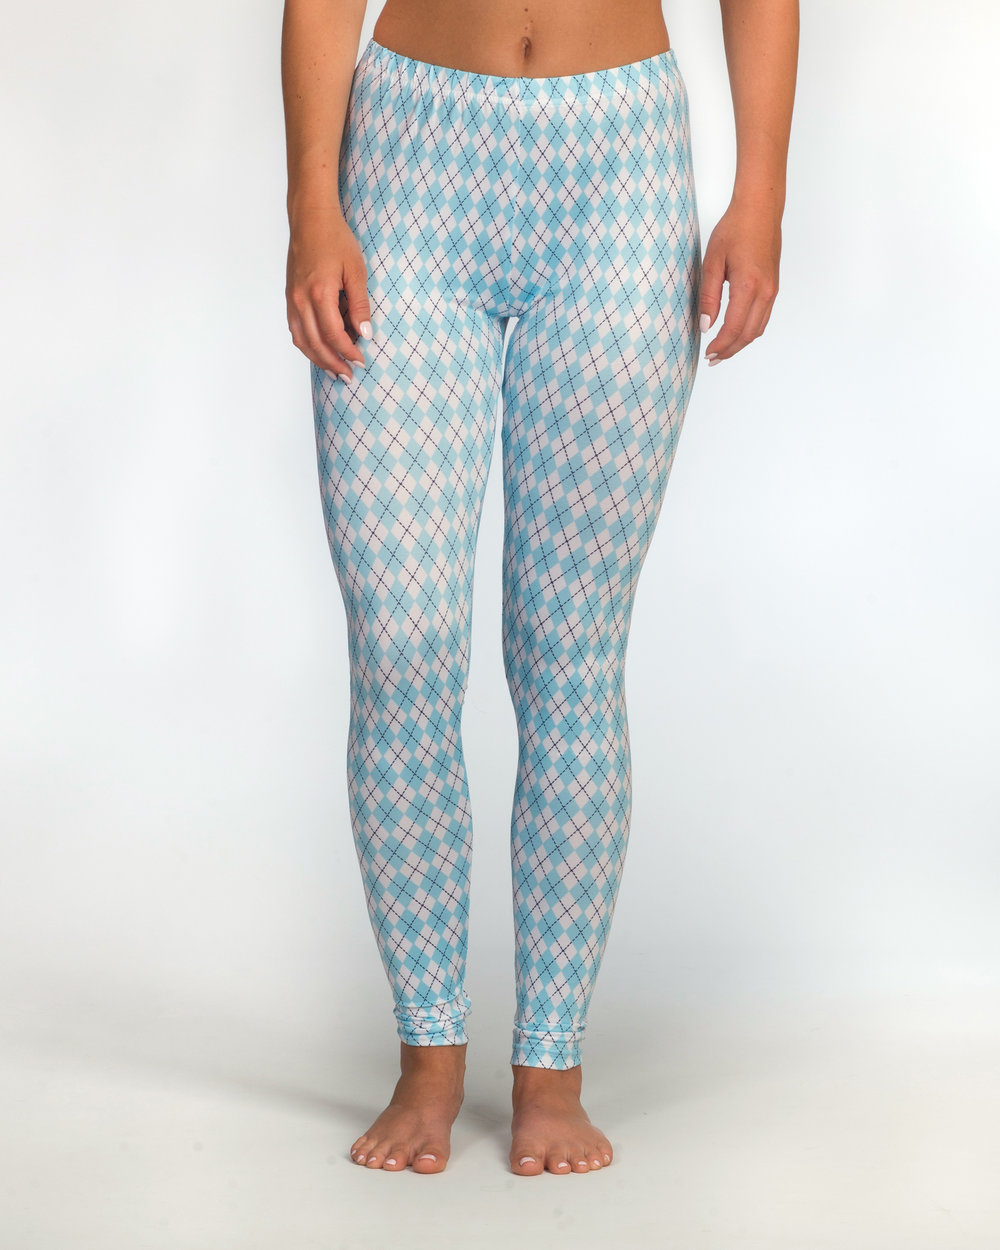 """Madison is 5' 6"""" tall, has 31"""" hips, and is rockin' a size S in UNC Argyle Gameday Leggings"""